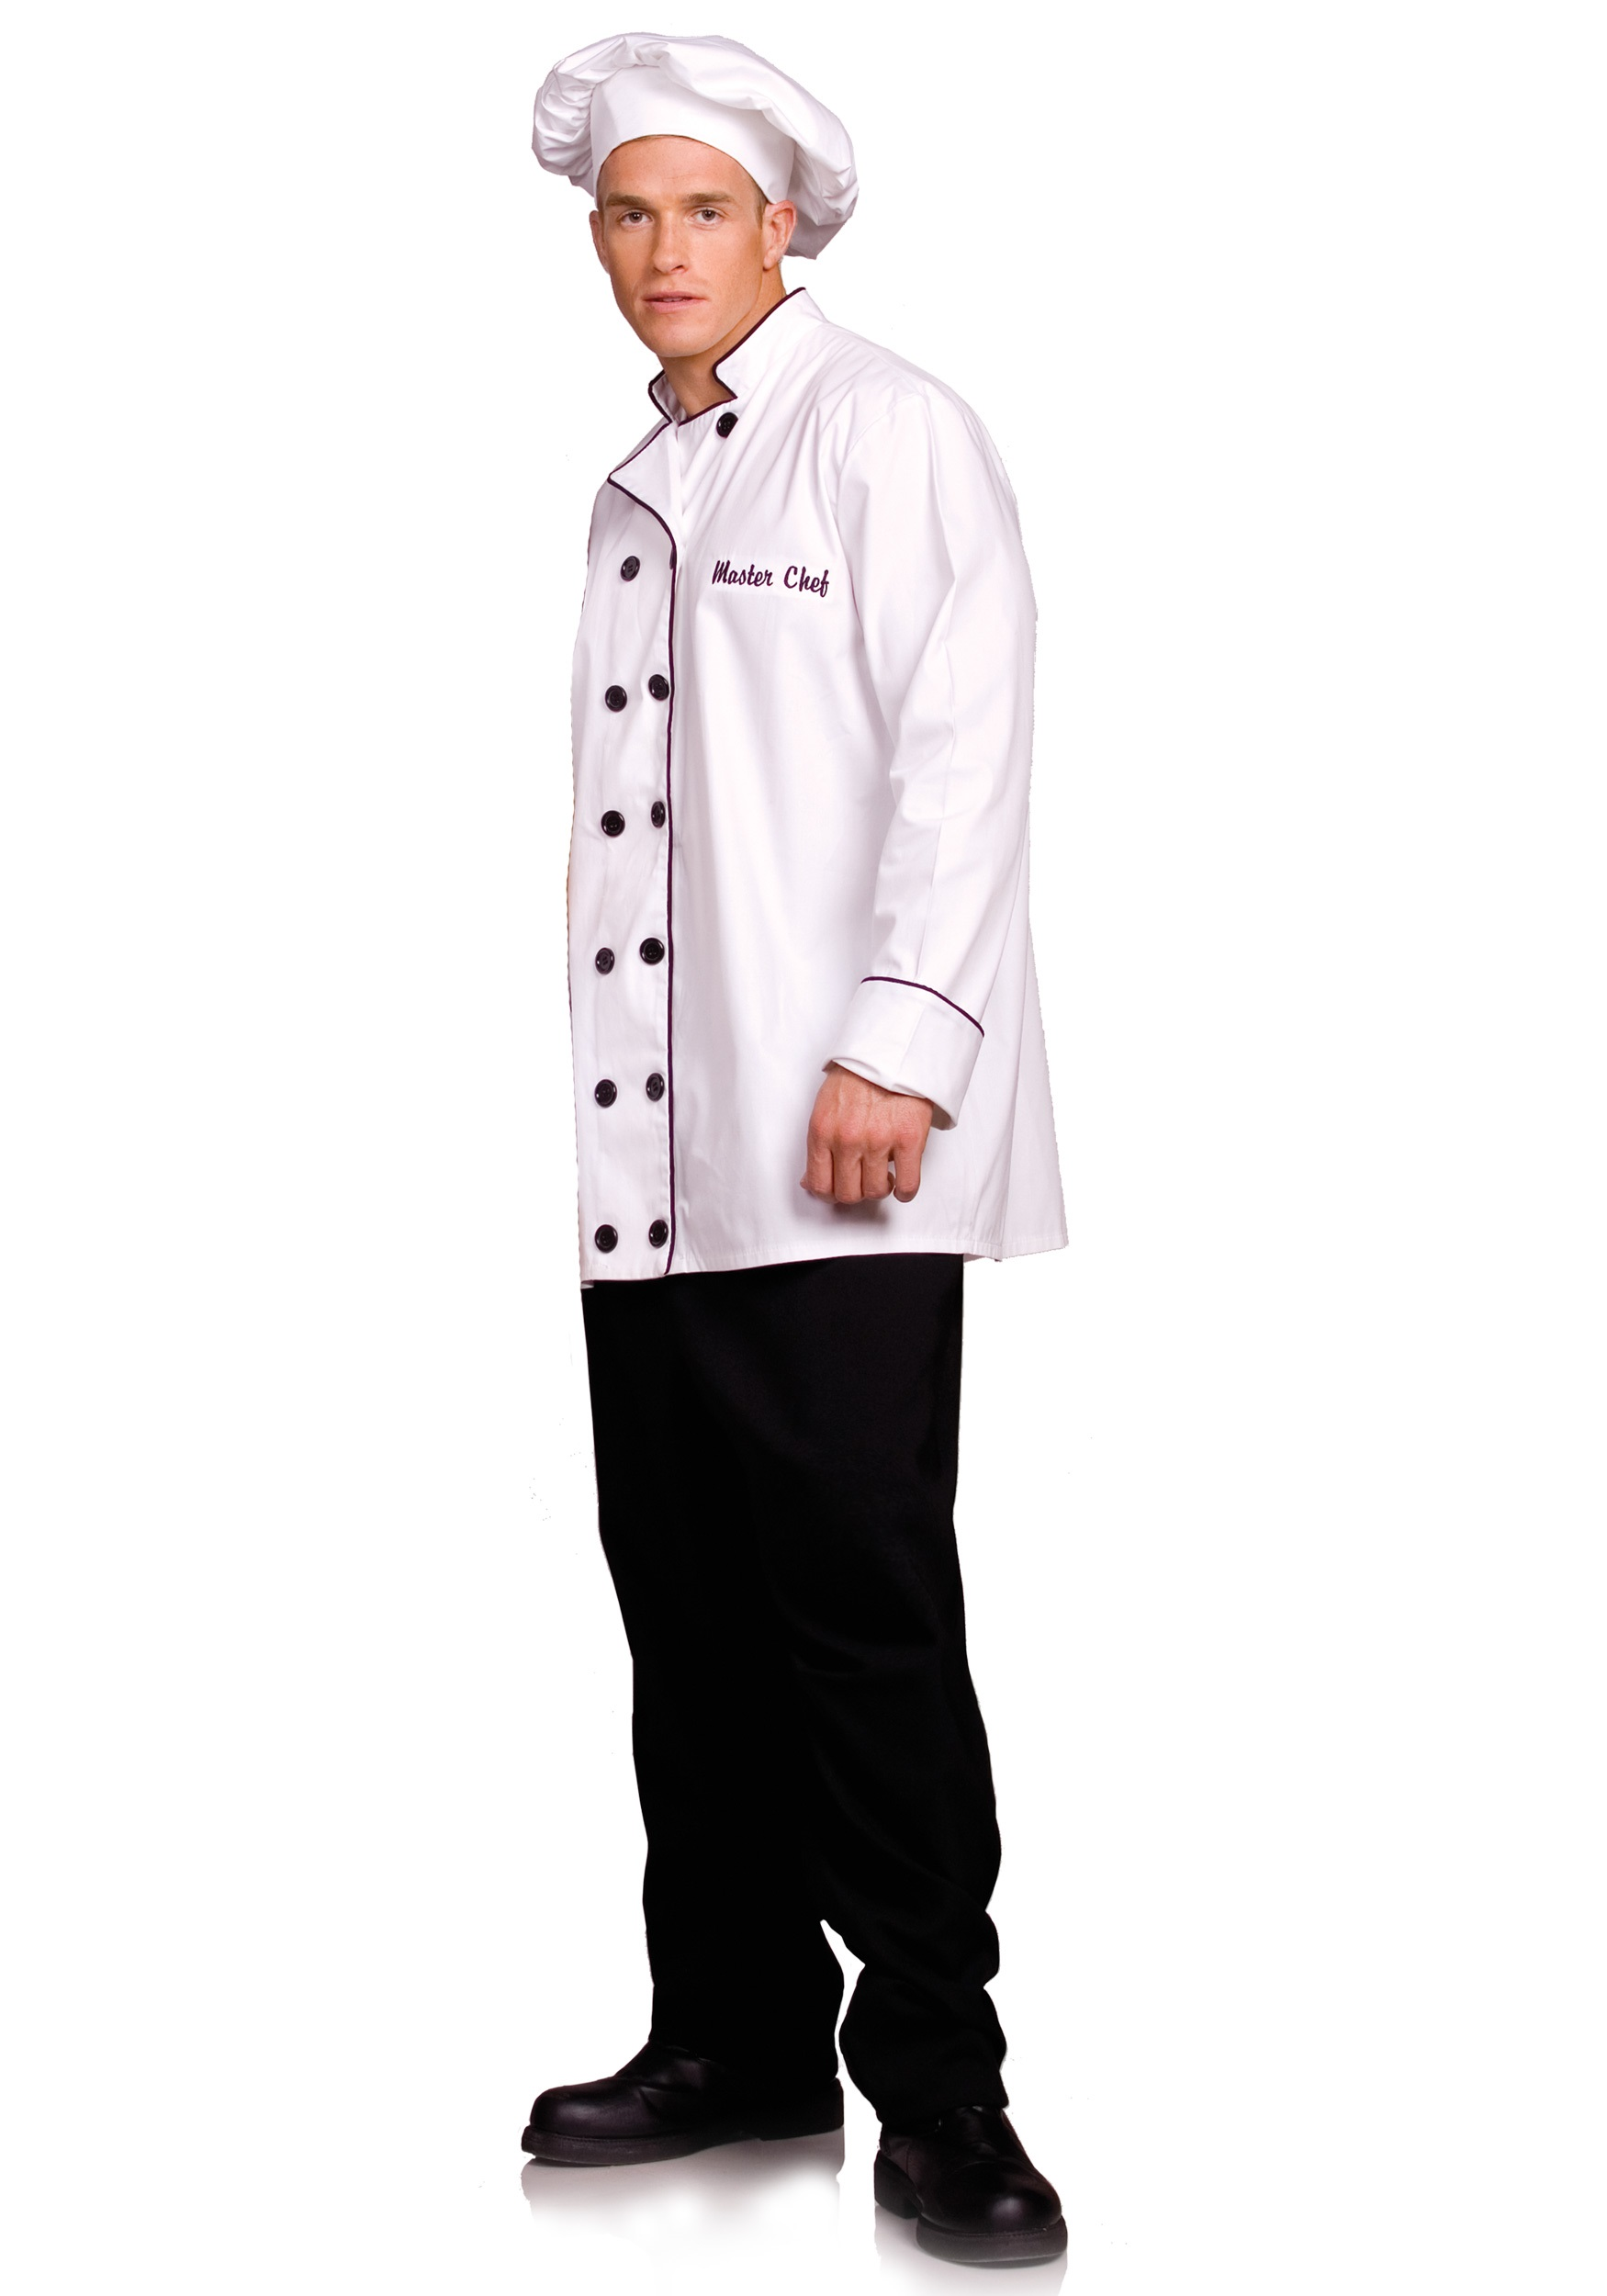 Chef Outfits & Baker Costumes - HalloweenCostumes.com